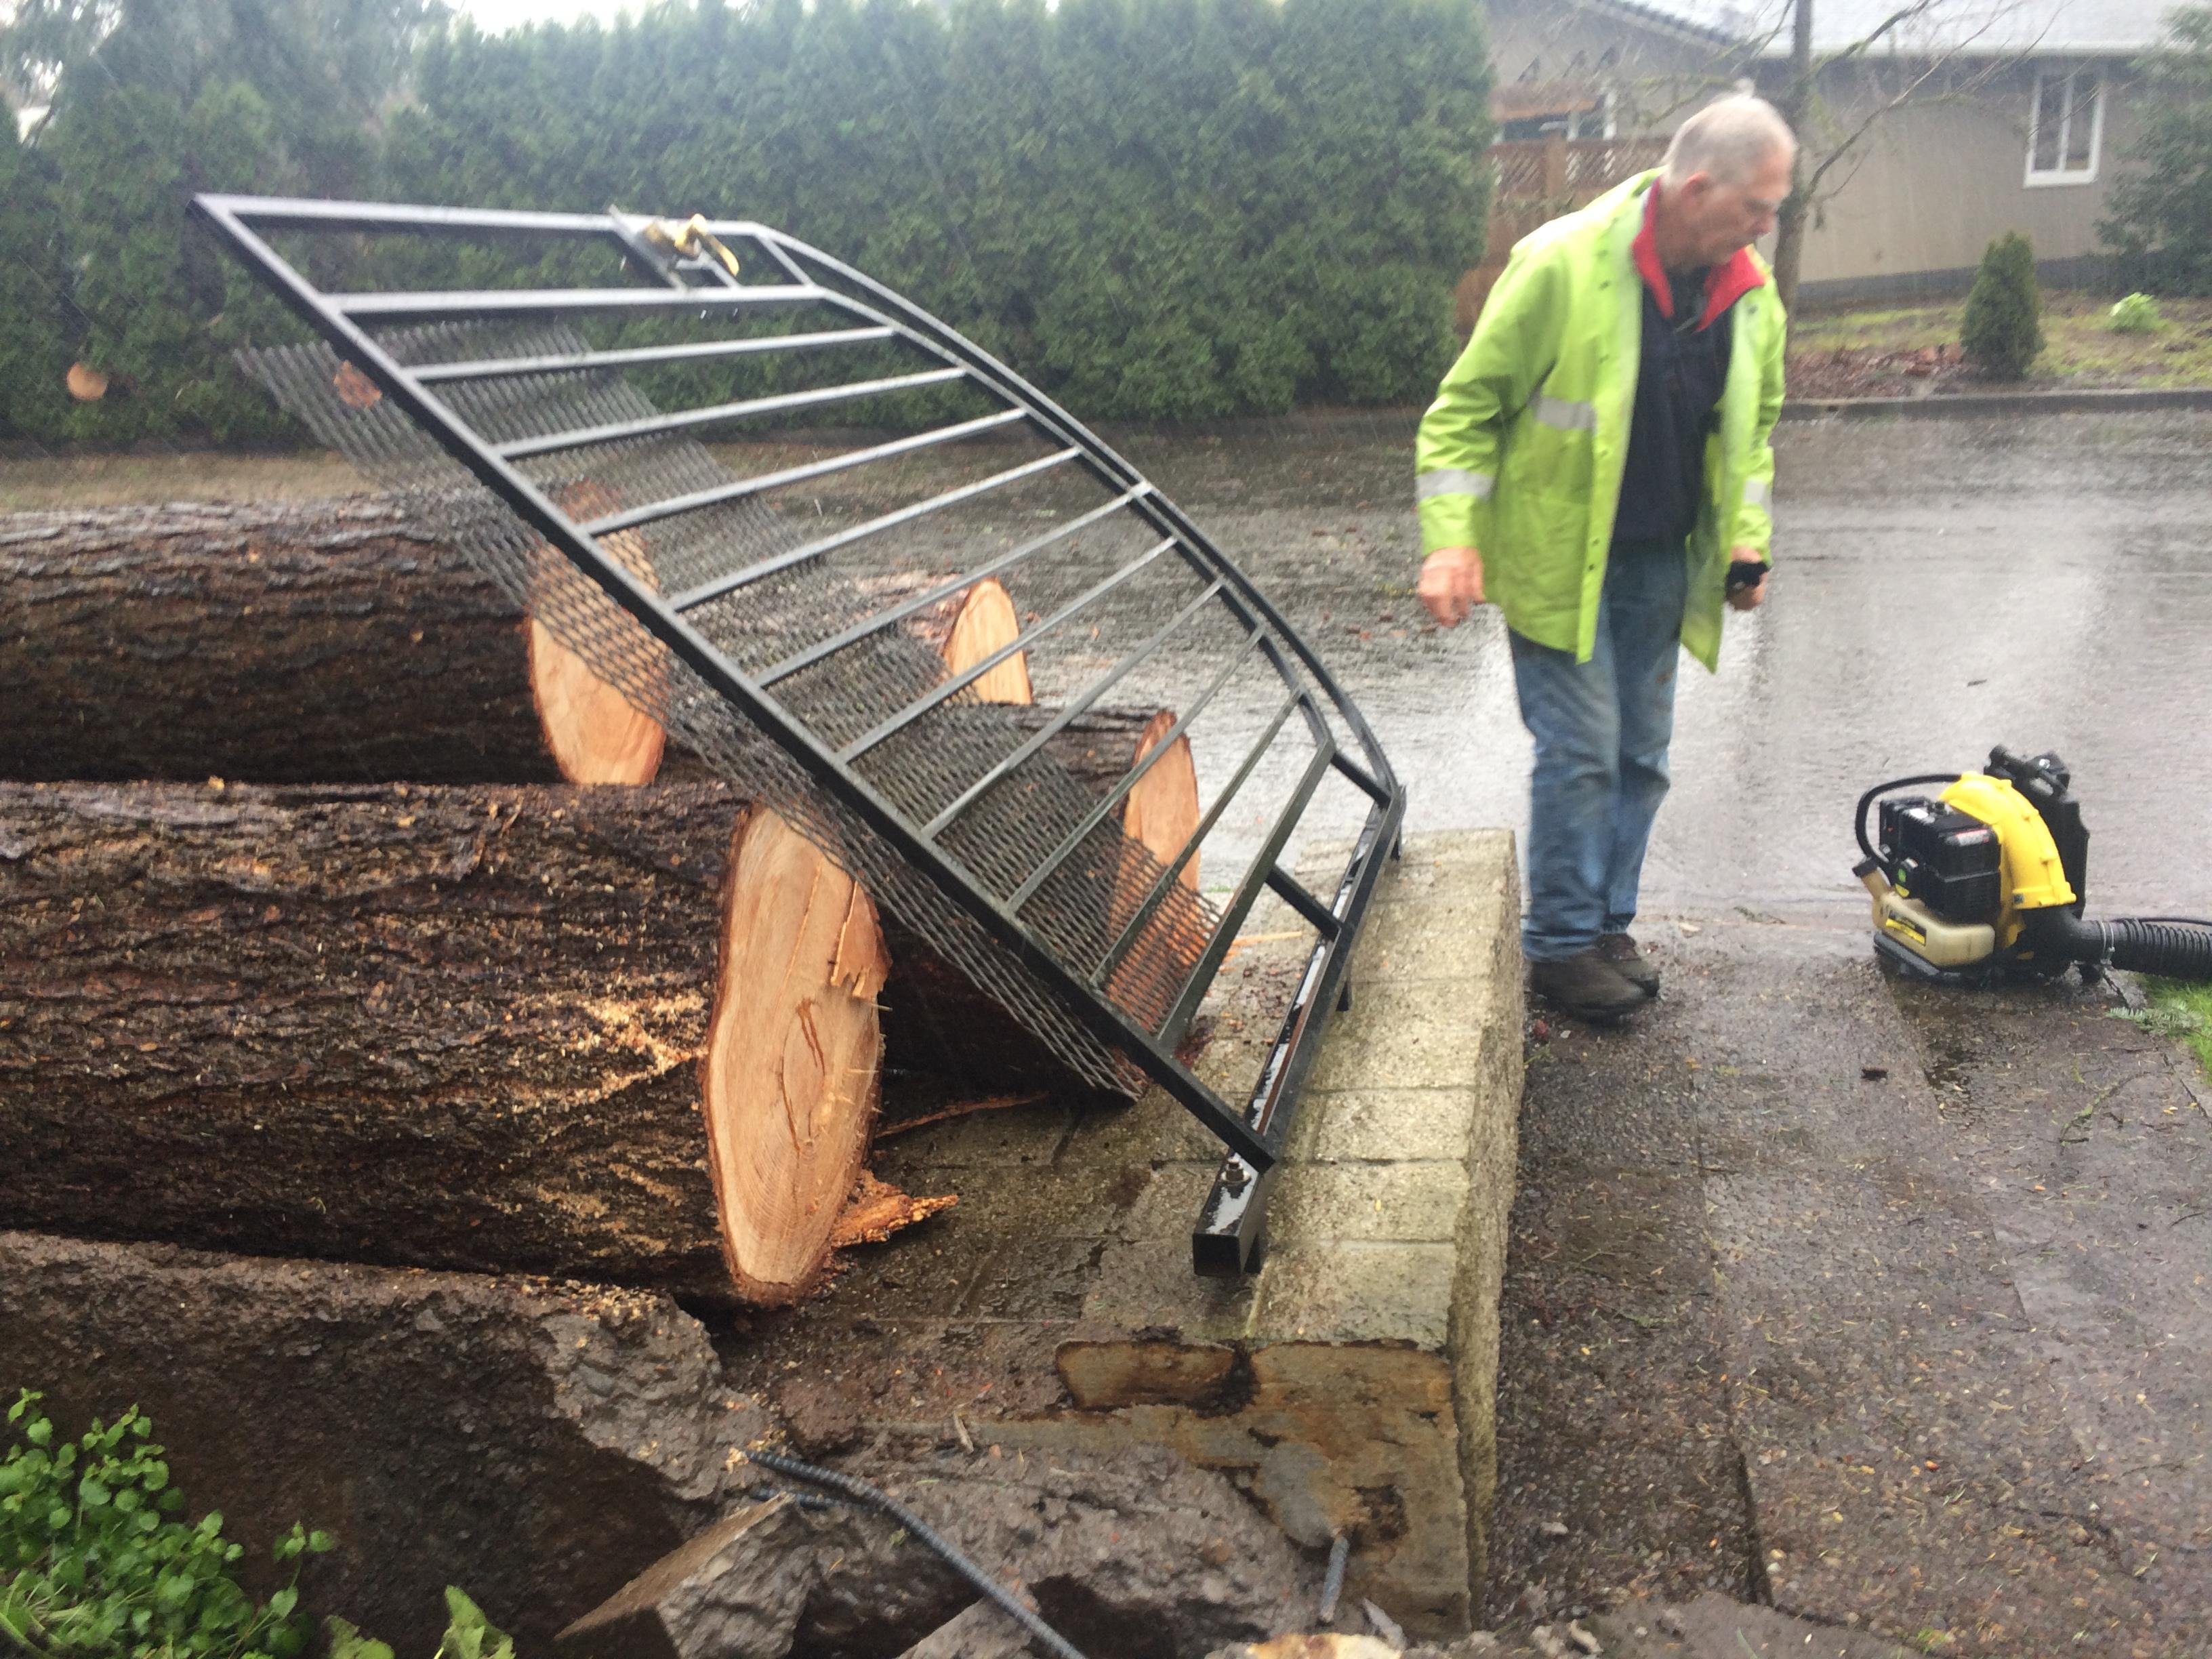 Across Eugene, residents woke up Friday morning to find damaged and downed trees littering the streets. (SBG photo)